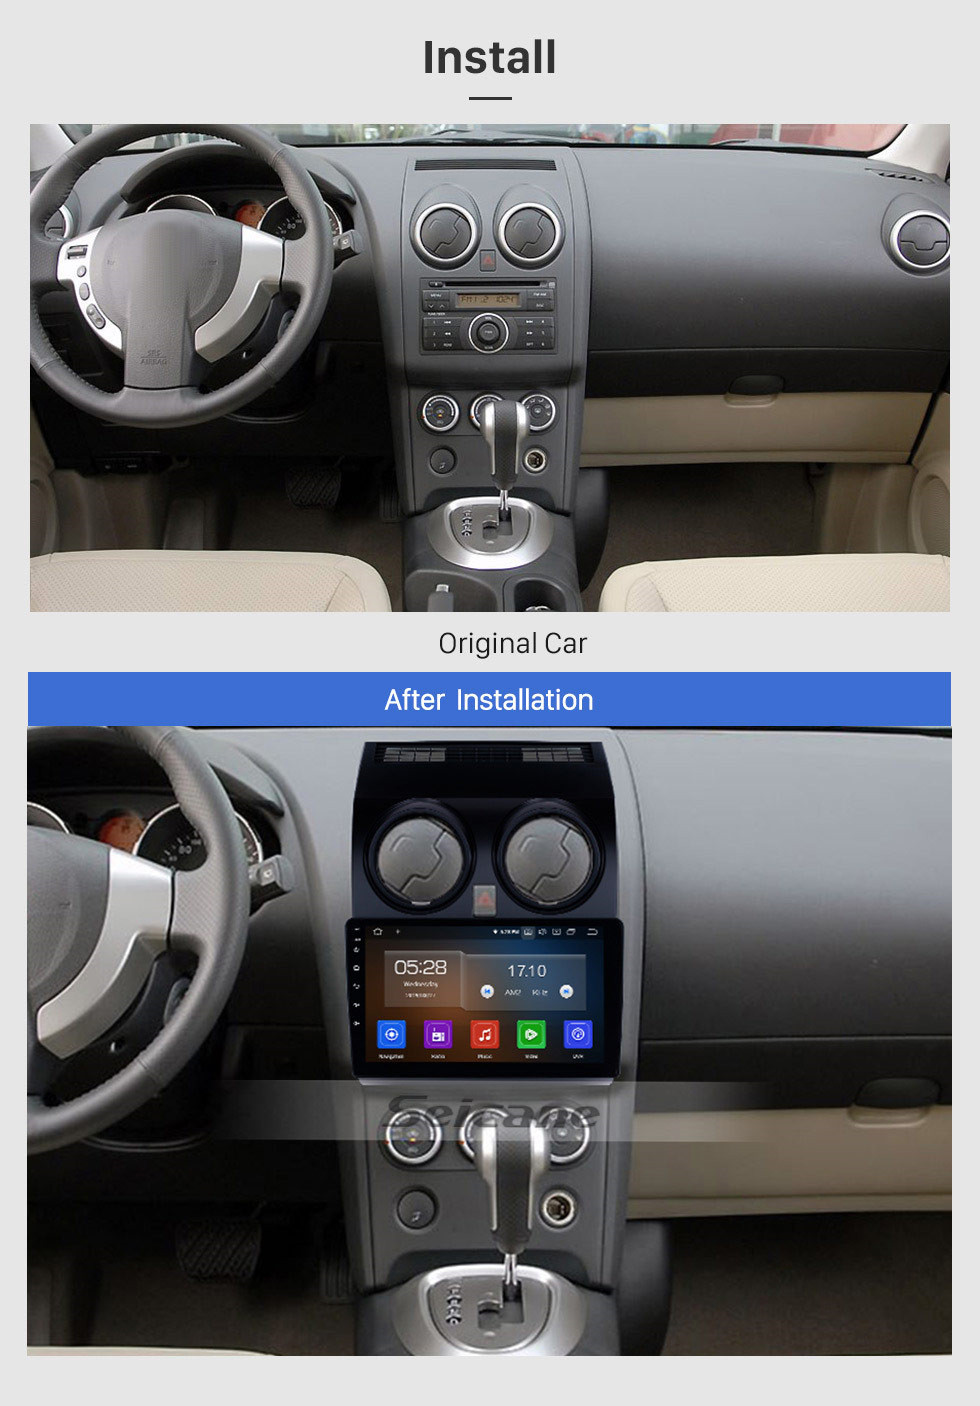 Seicane Android 10.0 GPS Navigation 9 inch Radio for 2008-2015 Nissan Qashqai 1 J10 with 1024*600 touchscreen stereo USB Bluetooth AM/FM WIFI music support Backup Camera SWC OBD2 DVD Player 4G